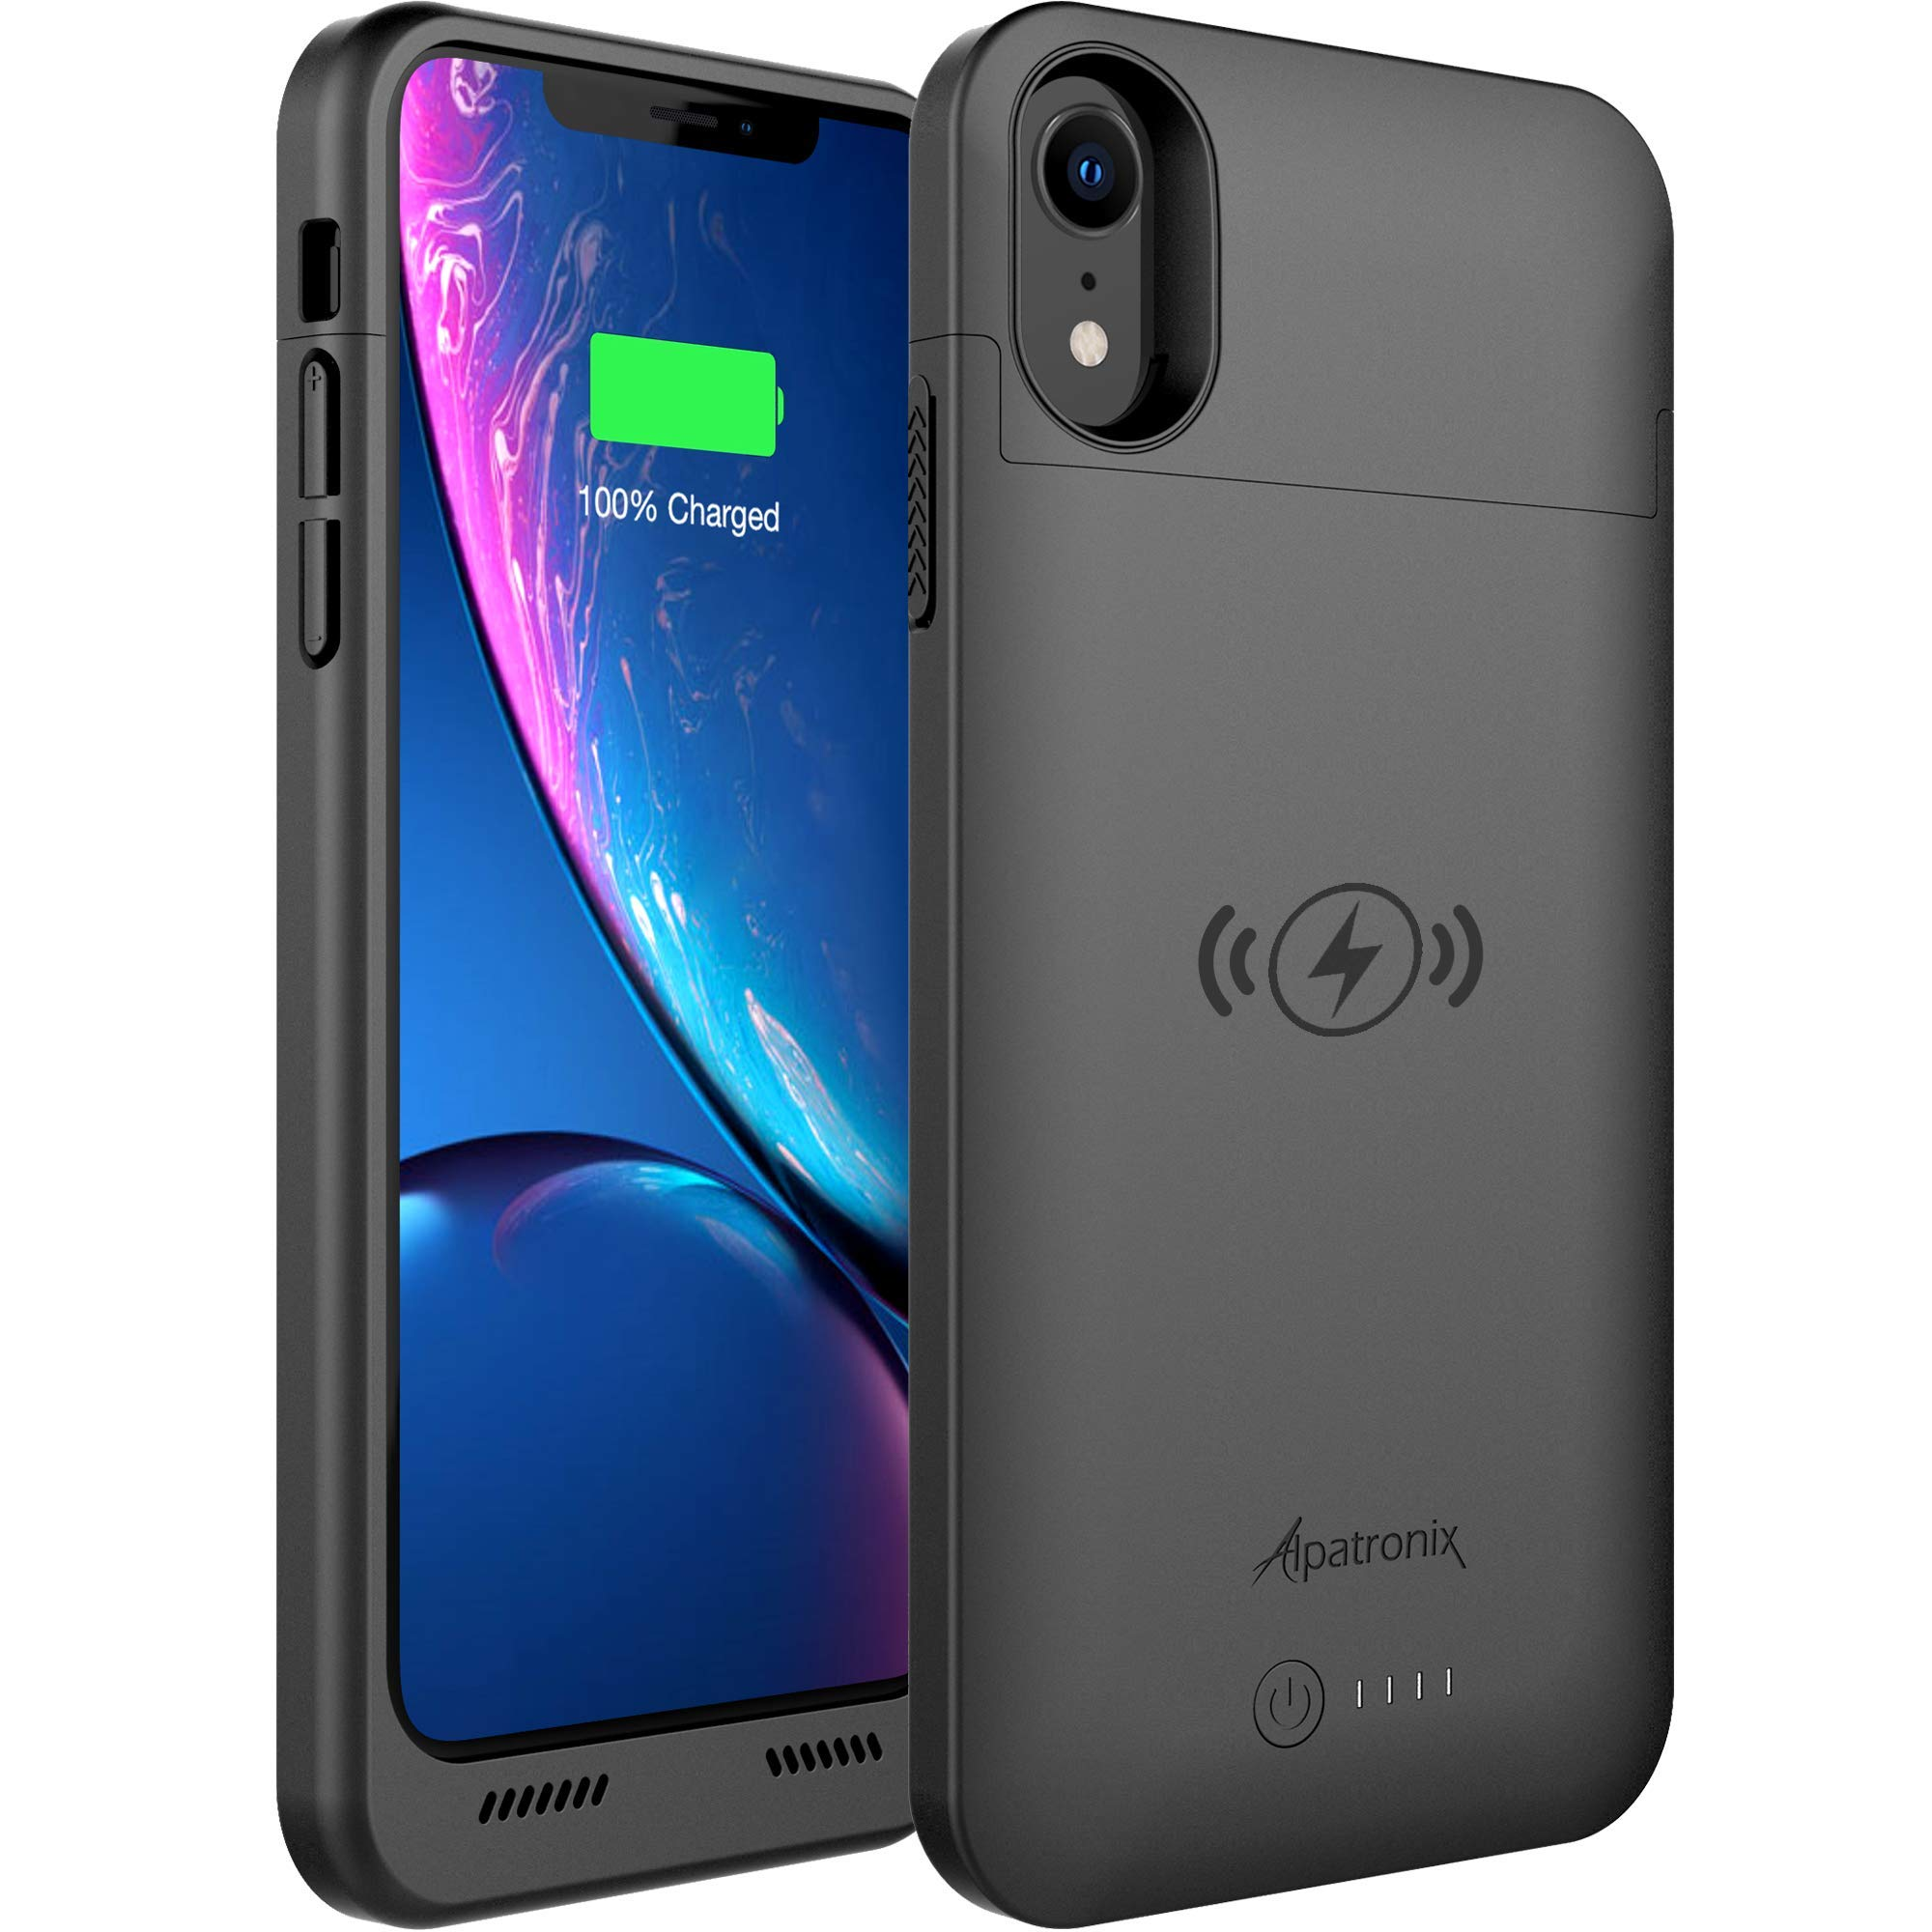 Funda Con Bateria de 3500mah para Apple Iphone Xr ALPATRONIX [7H843D4Y]